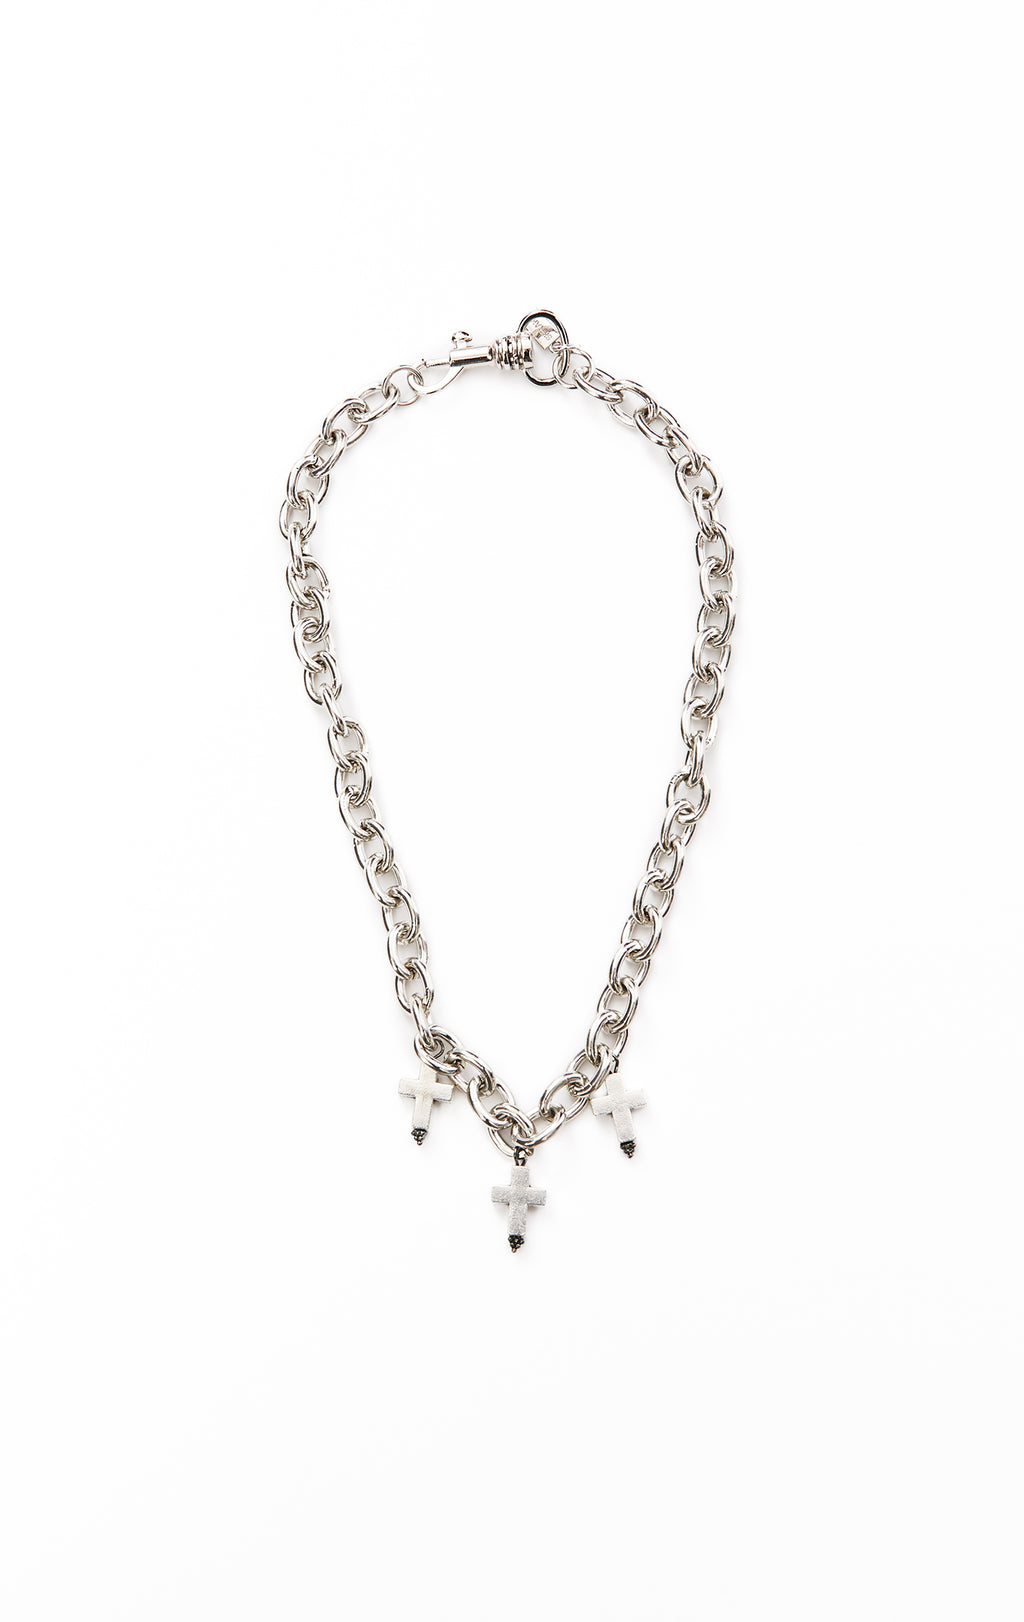 SHRAKE CHAIN NECKLACE W/ SPIKE CROSSES